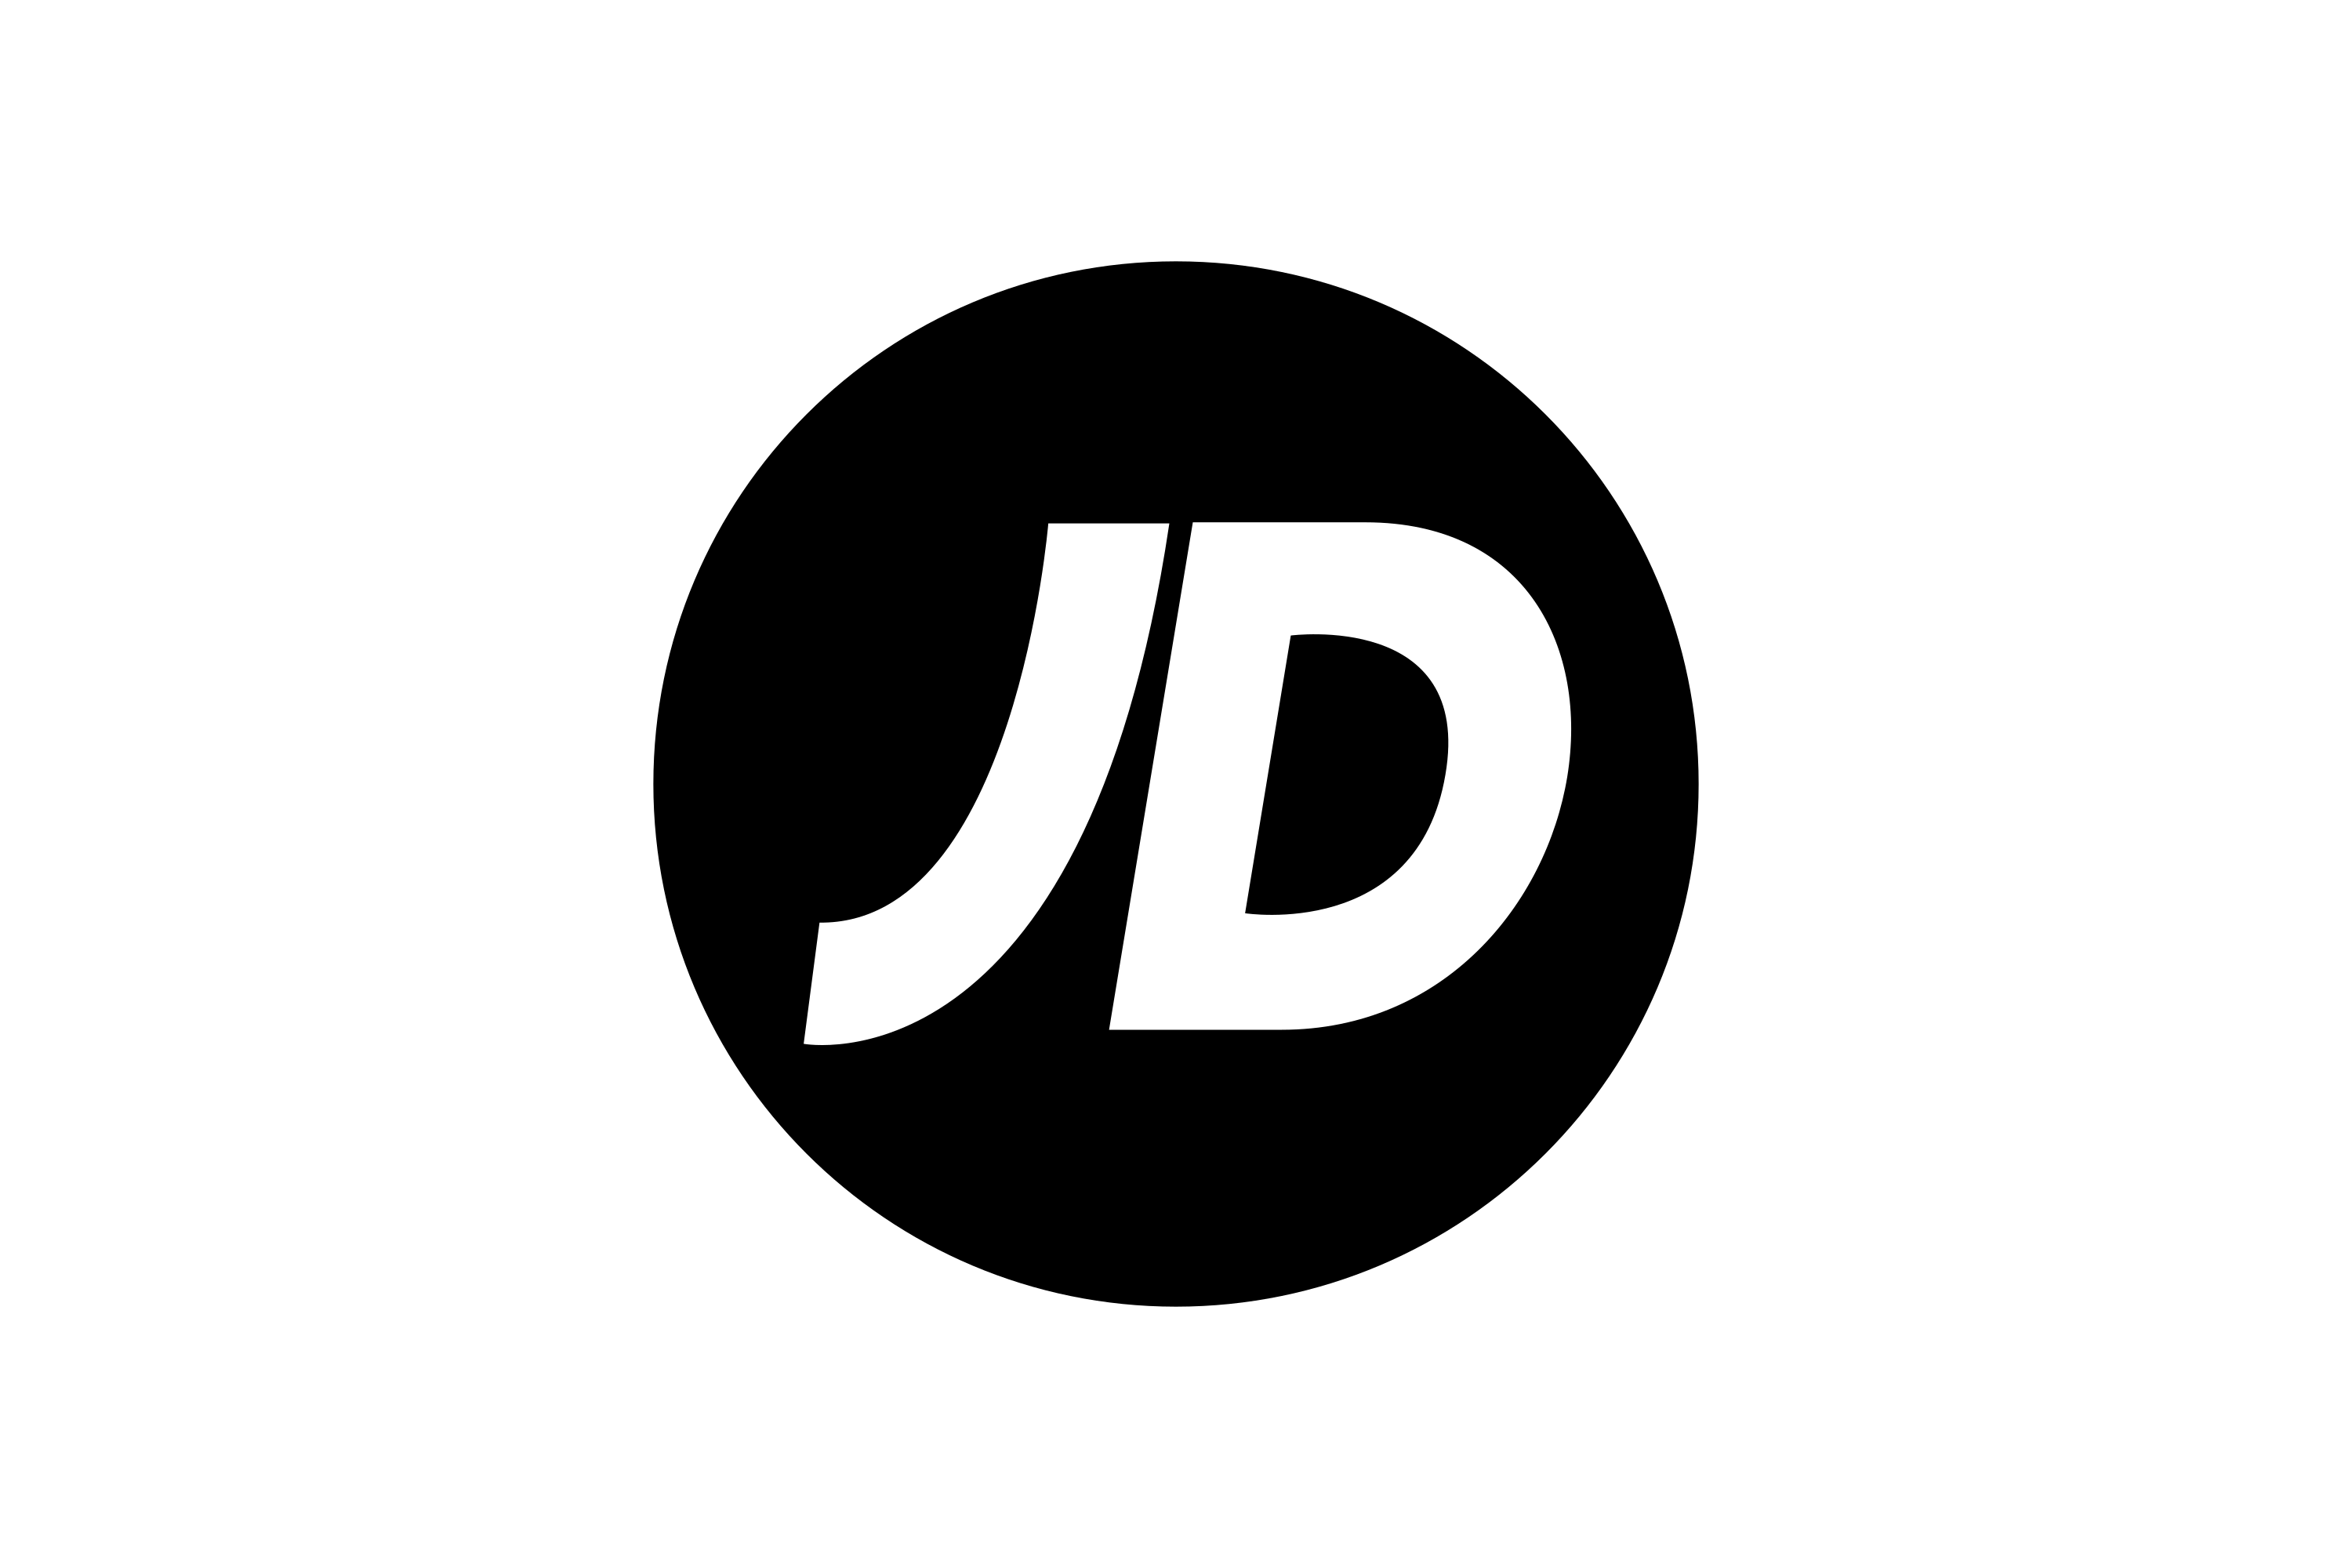 download jd sports logo in svg vector or png file format logo wine logo in svg vector or png file format